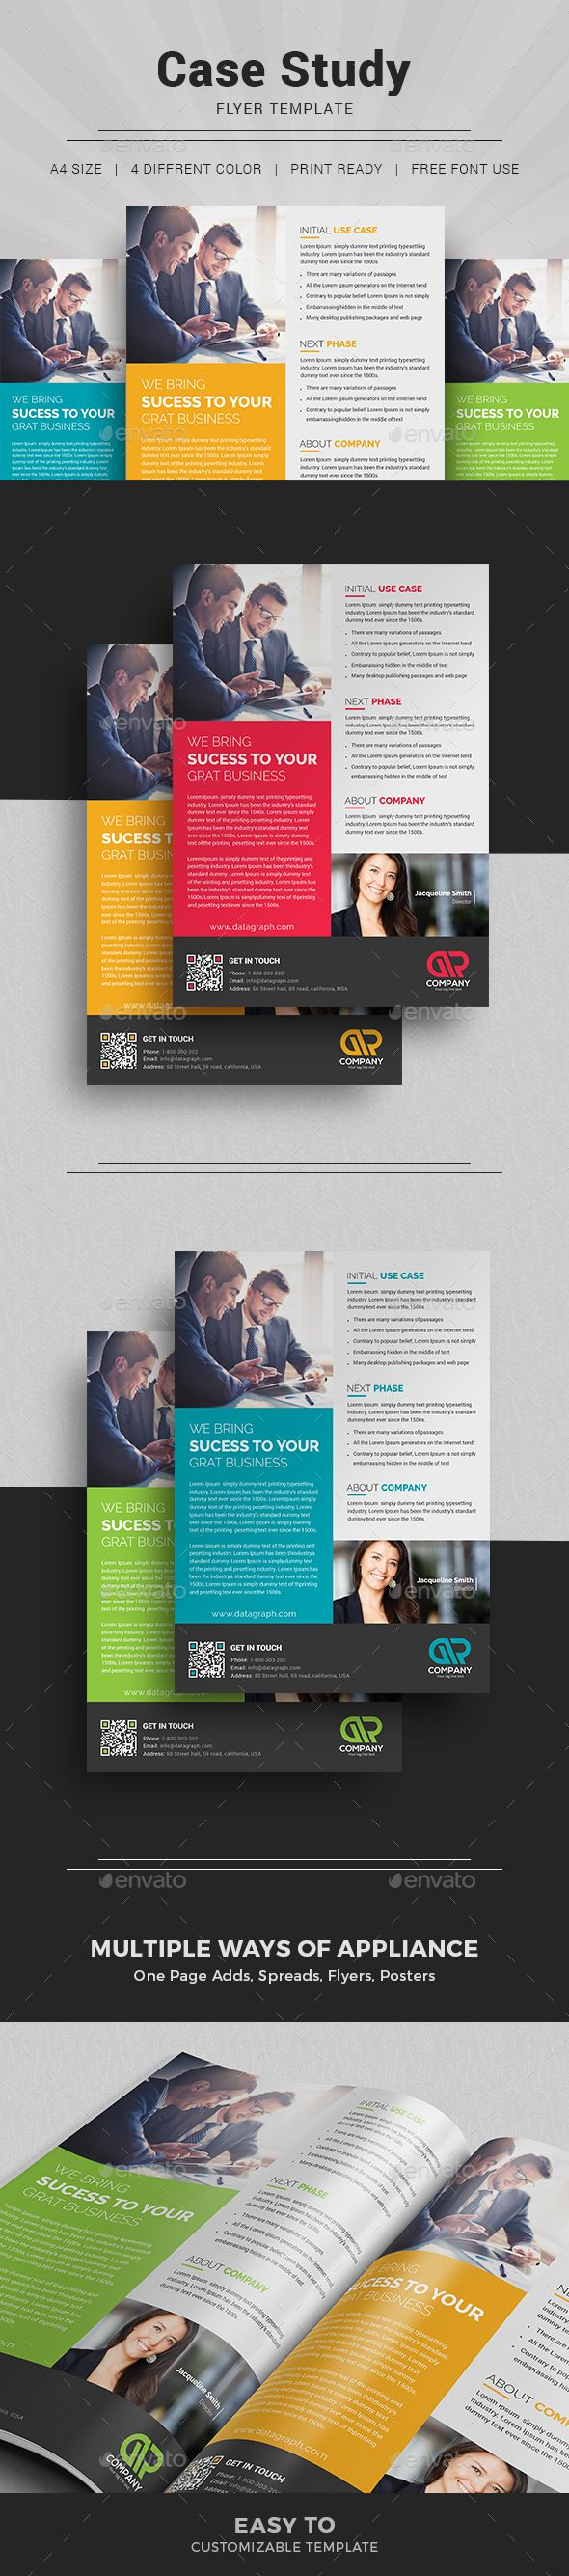 Case Study Flyer Template suitable for presenting your case studies in a professional way. You can use this template in multipurpose way like flyer, newsletter, printed portfolio or other editorial designs